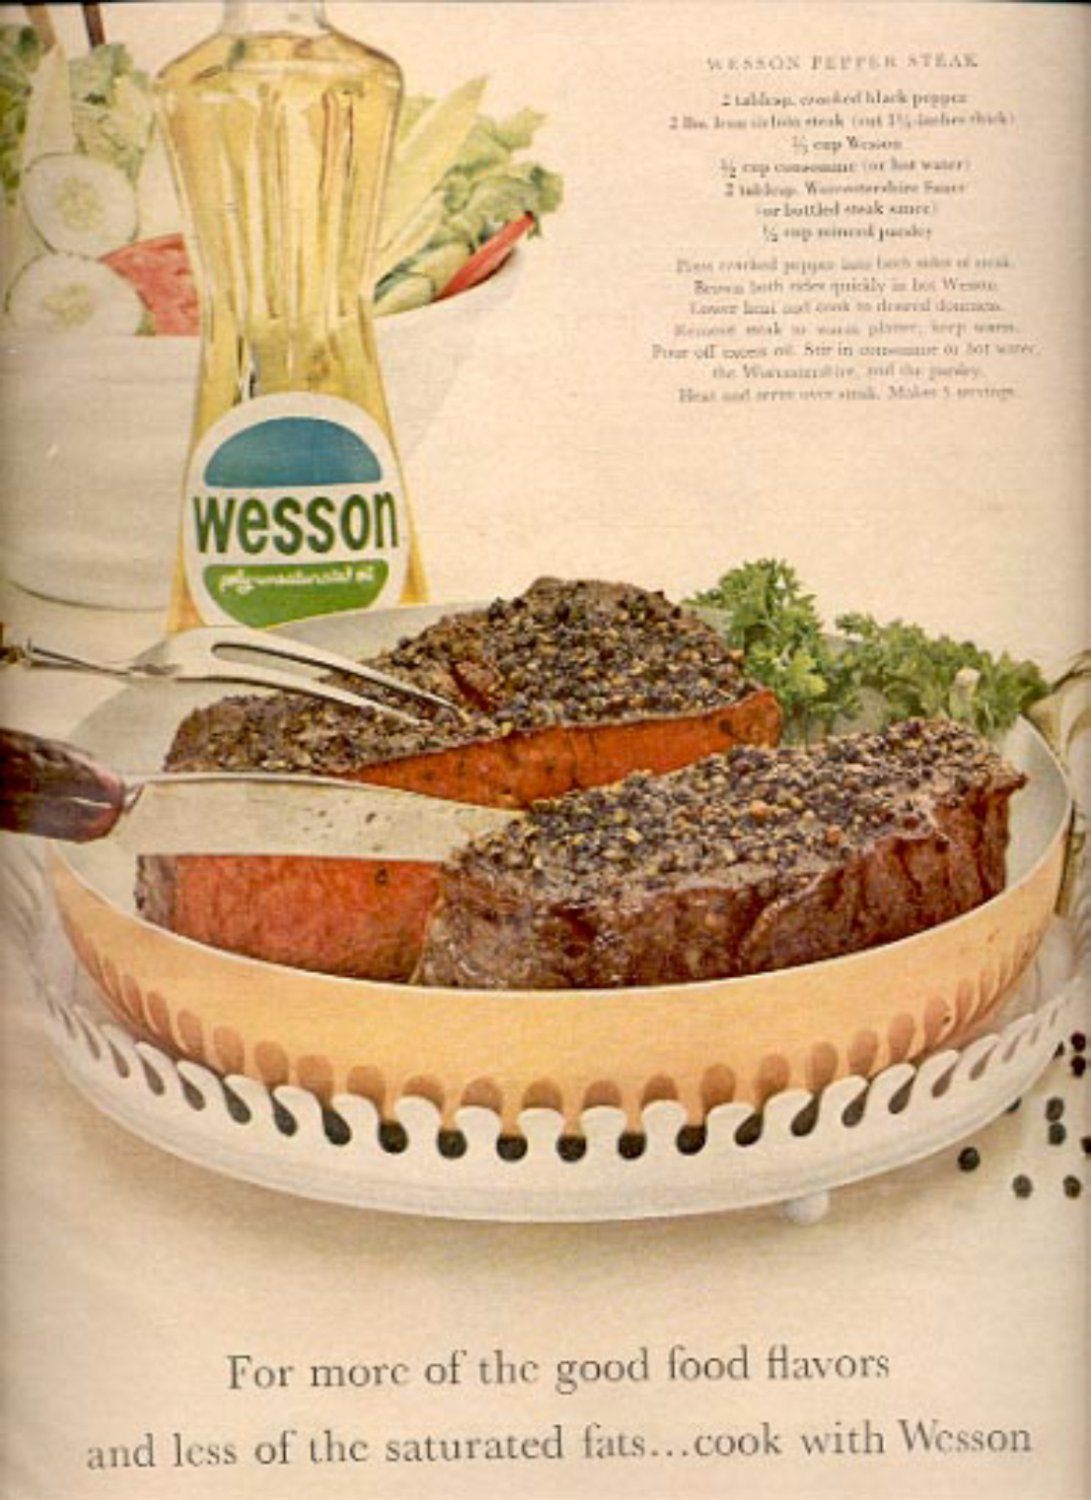 1964 Wesson Oil ad (# 4897)